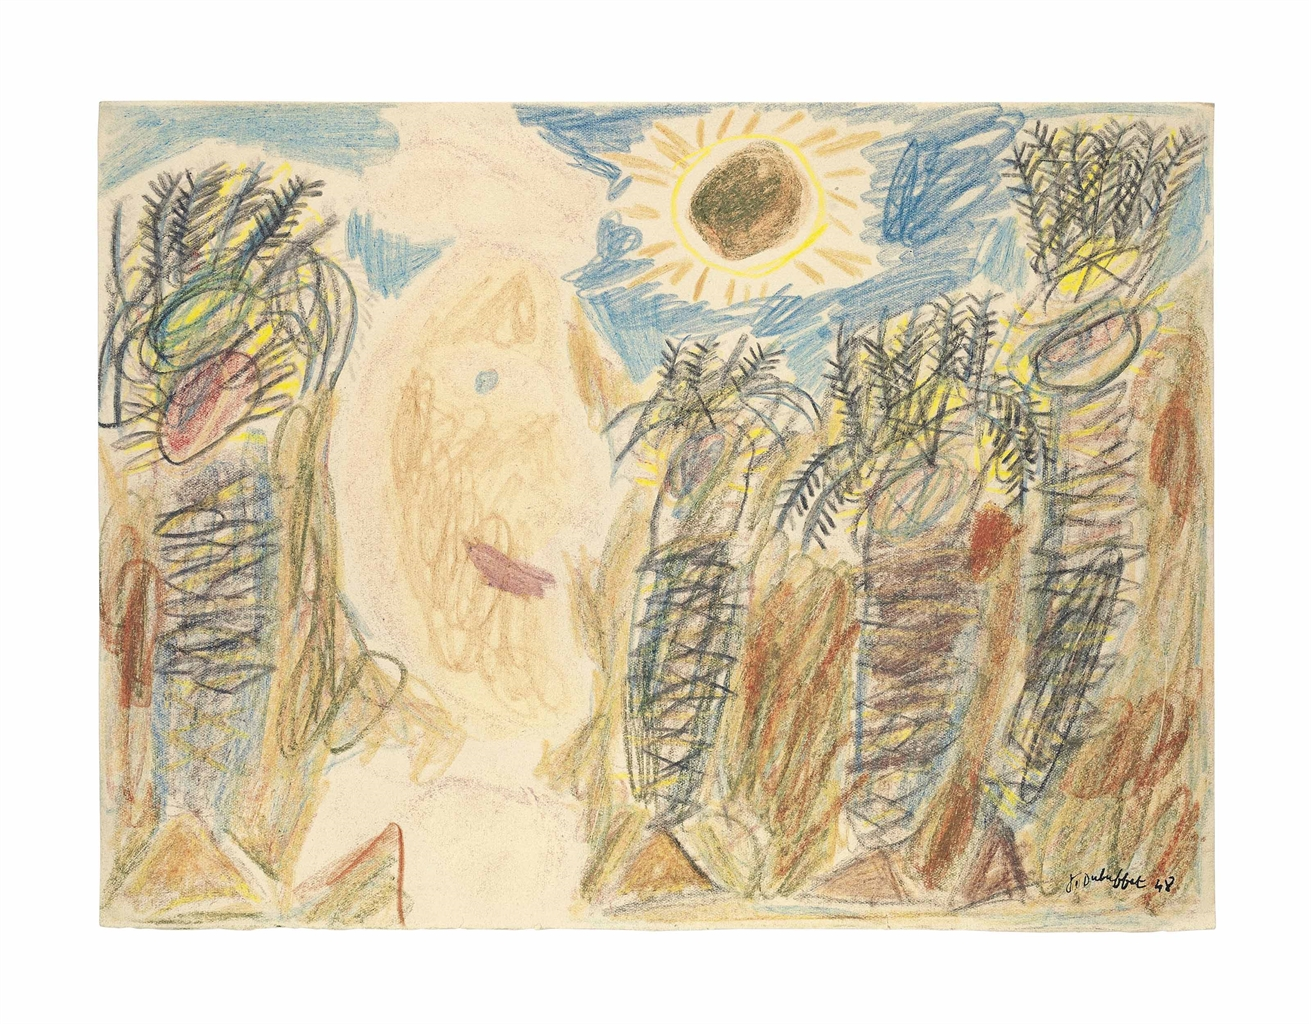 Jean Dubuffet-Arabe et palmiers sous le soleil (Arab and palm trees under the sun)-1948